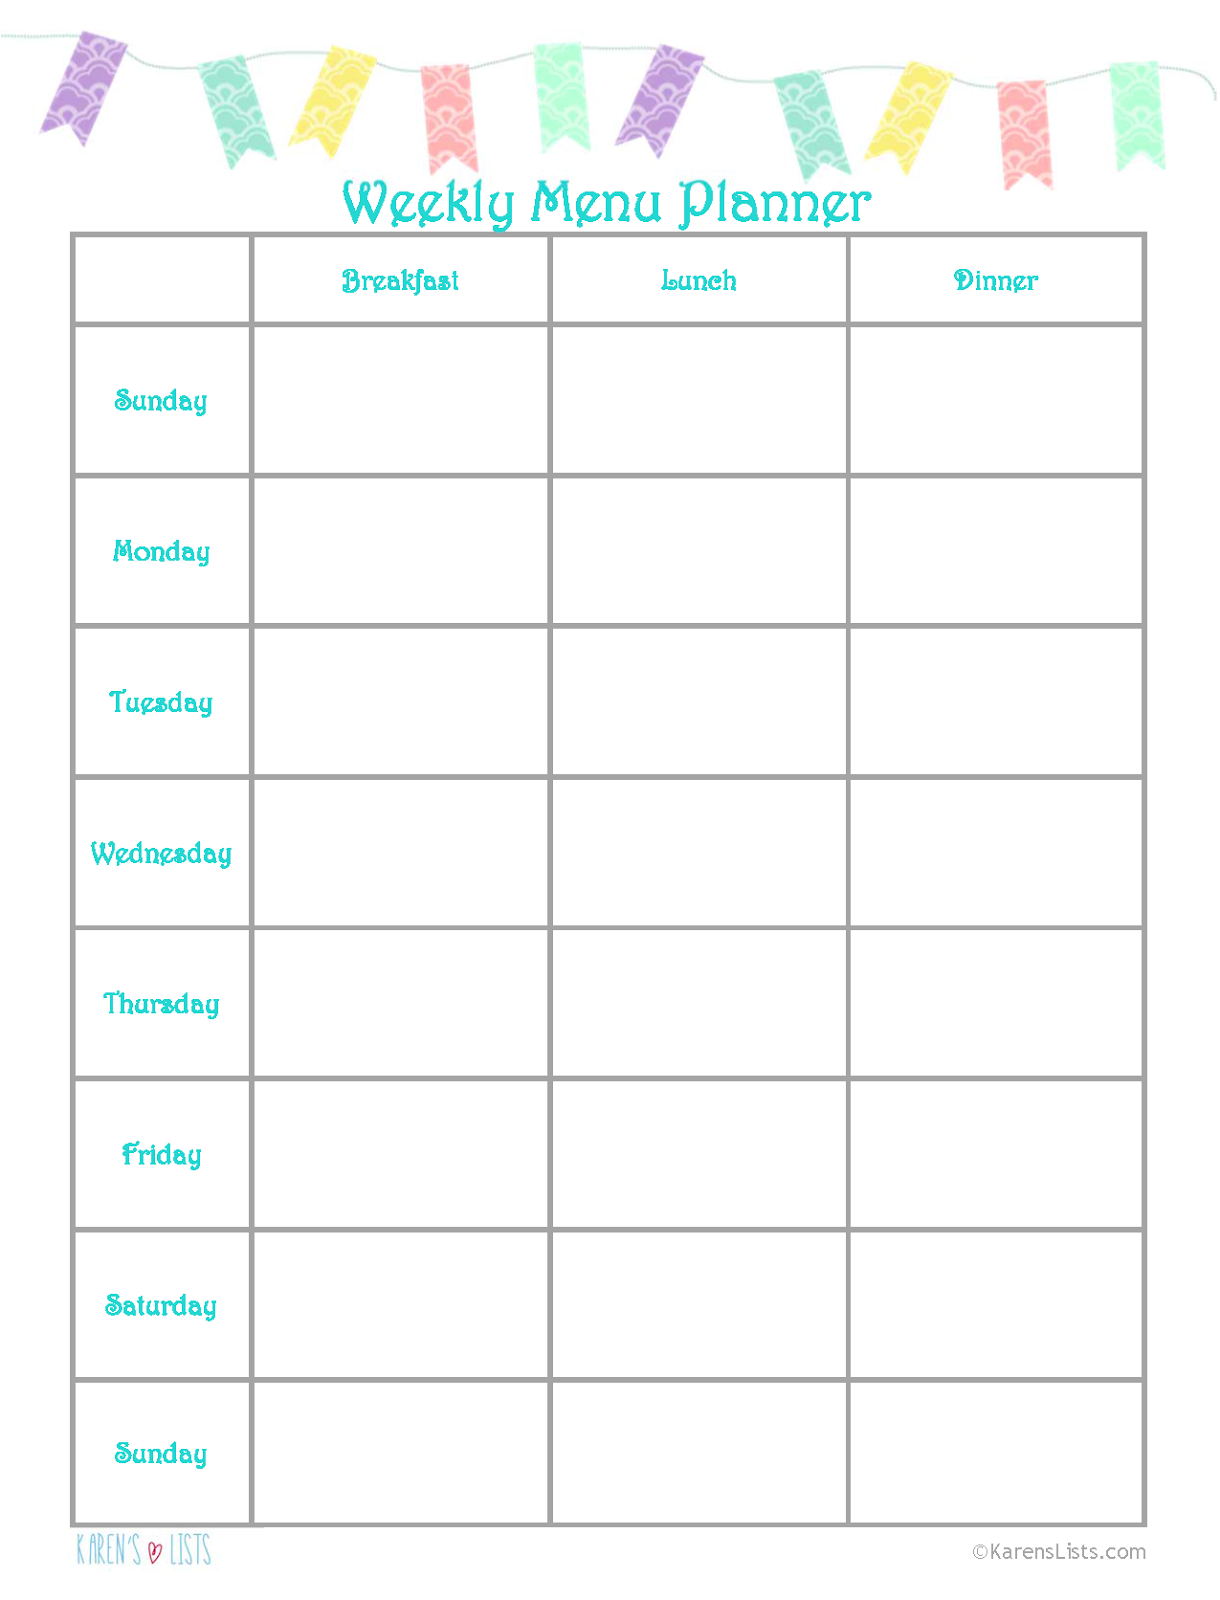 Karens Lists - Free Weekly Menu Planner